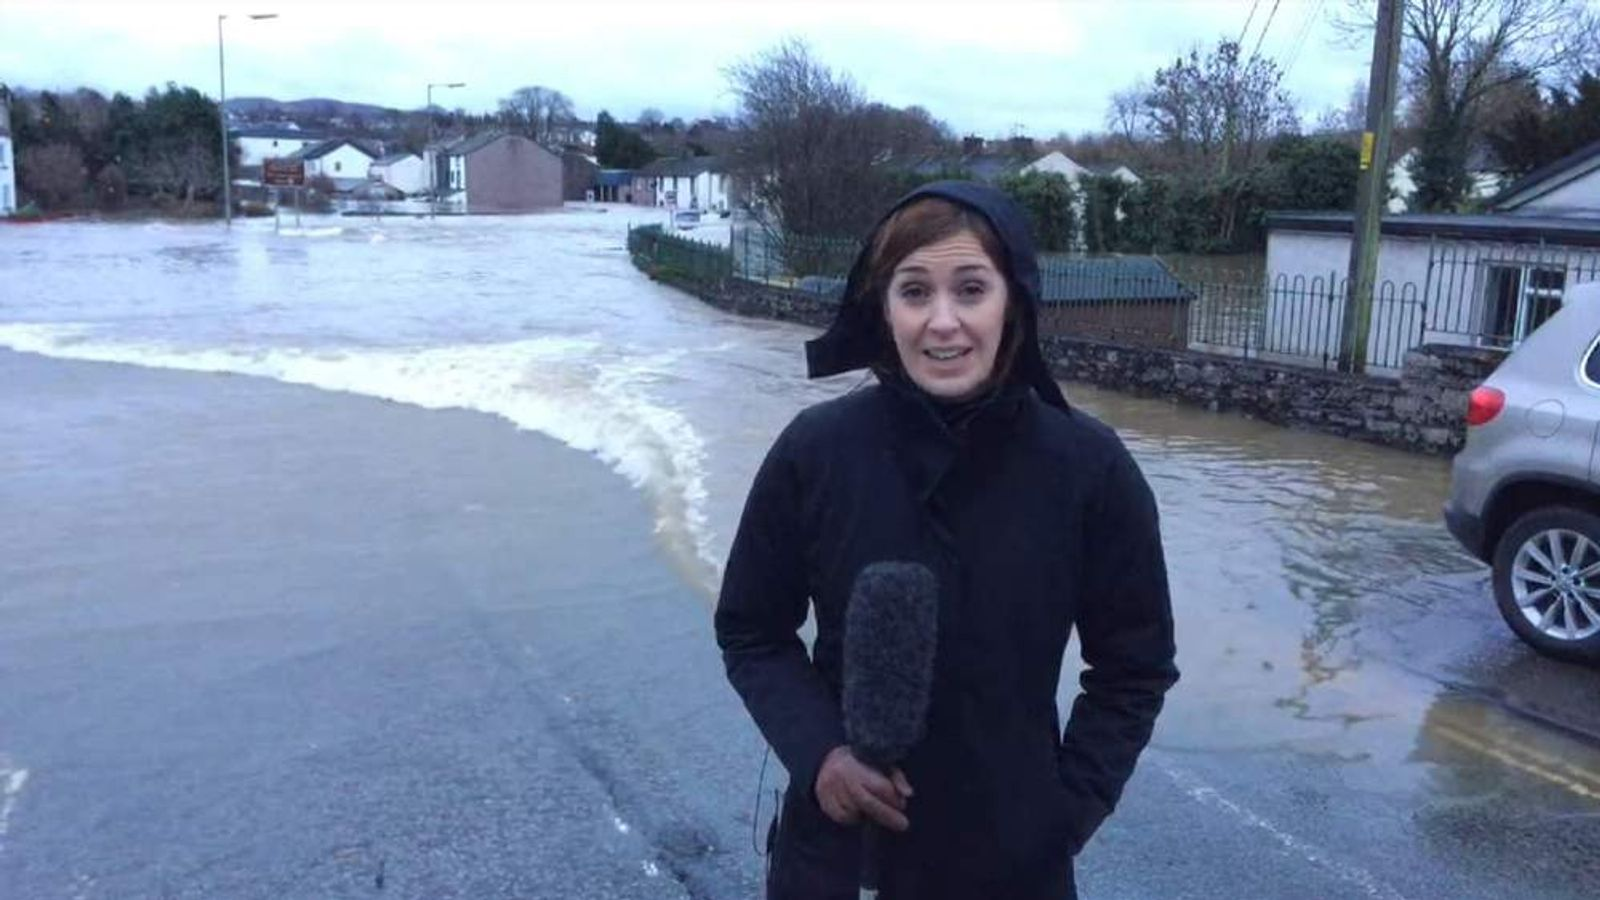 Sky S Katie Spencer Reports On The Floods In Cockermouth